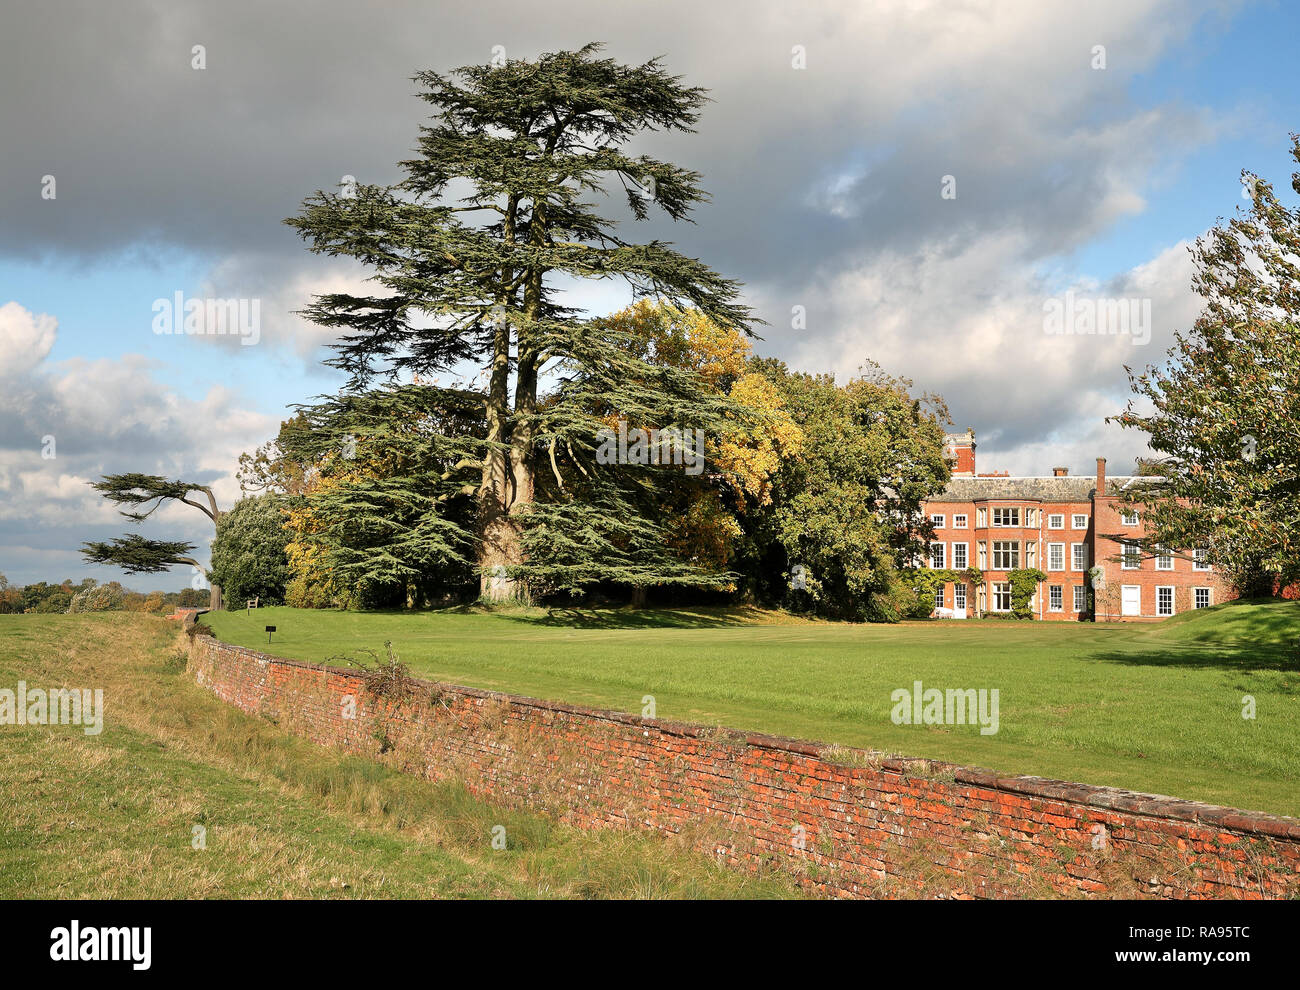 Claydon House viewed from an adjoining field - Stock Image